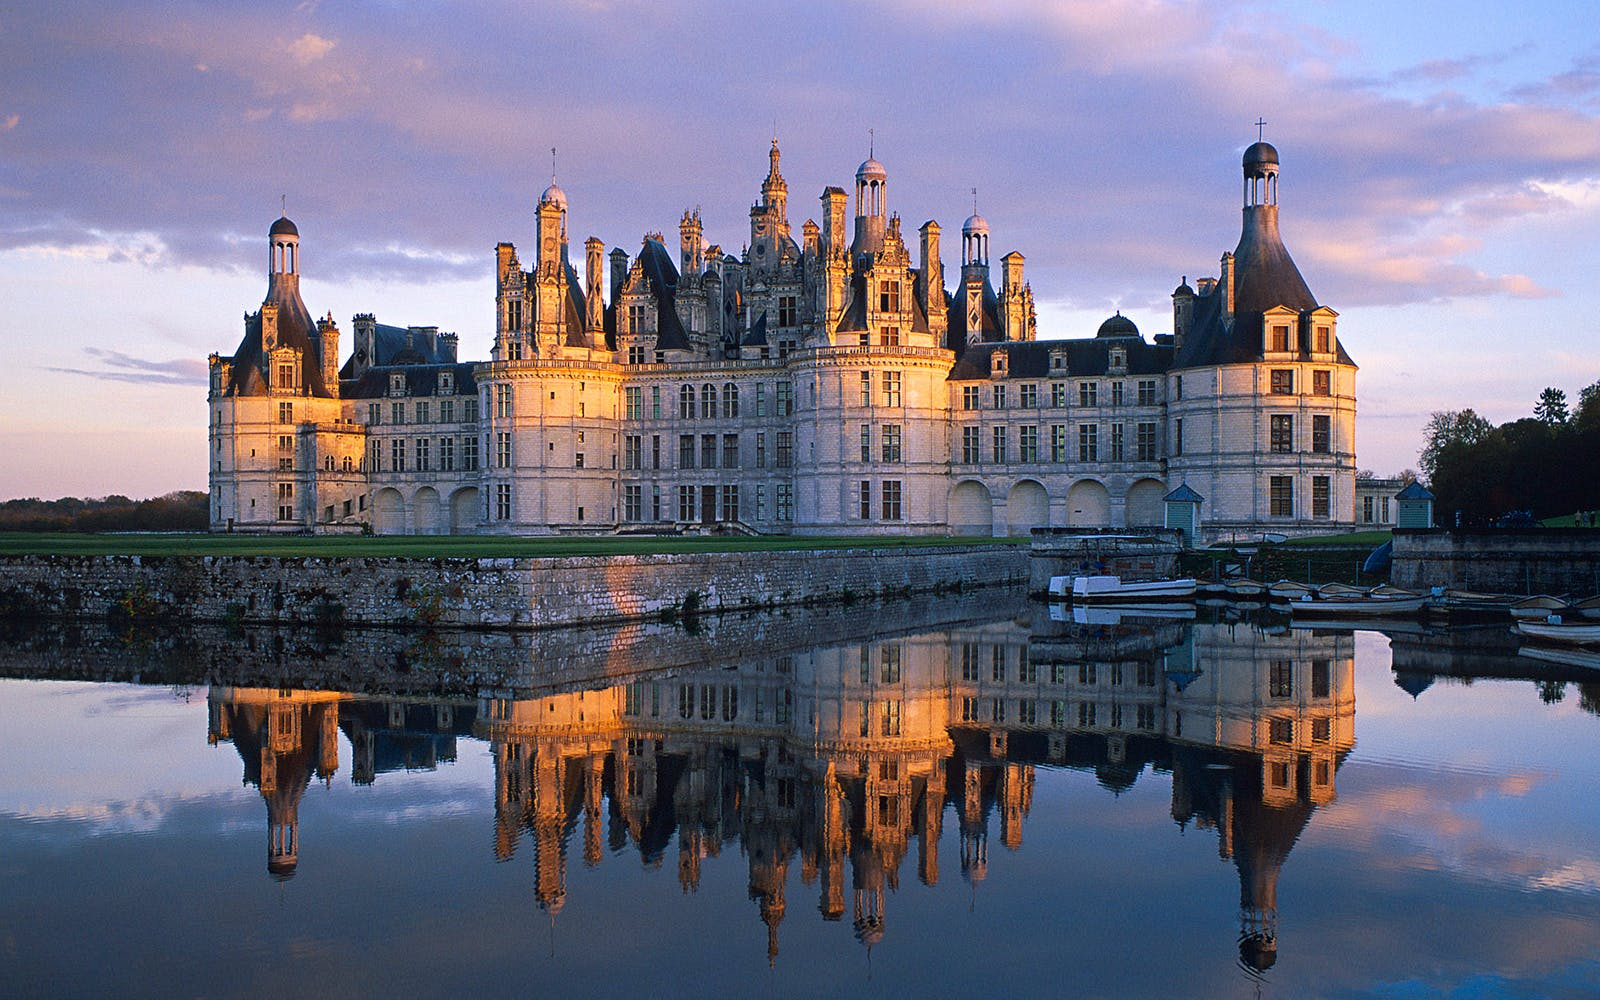 Loire Valley Castles - Chambord, Chenonceau, Nitray & Wine with Lunch Tour from Paris